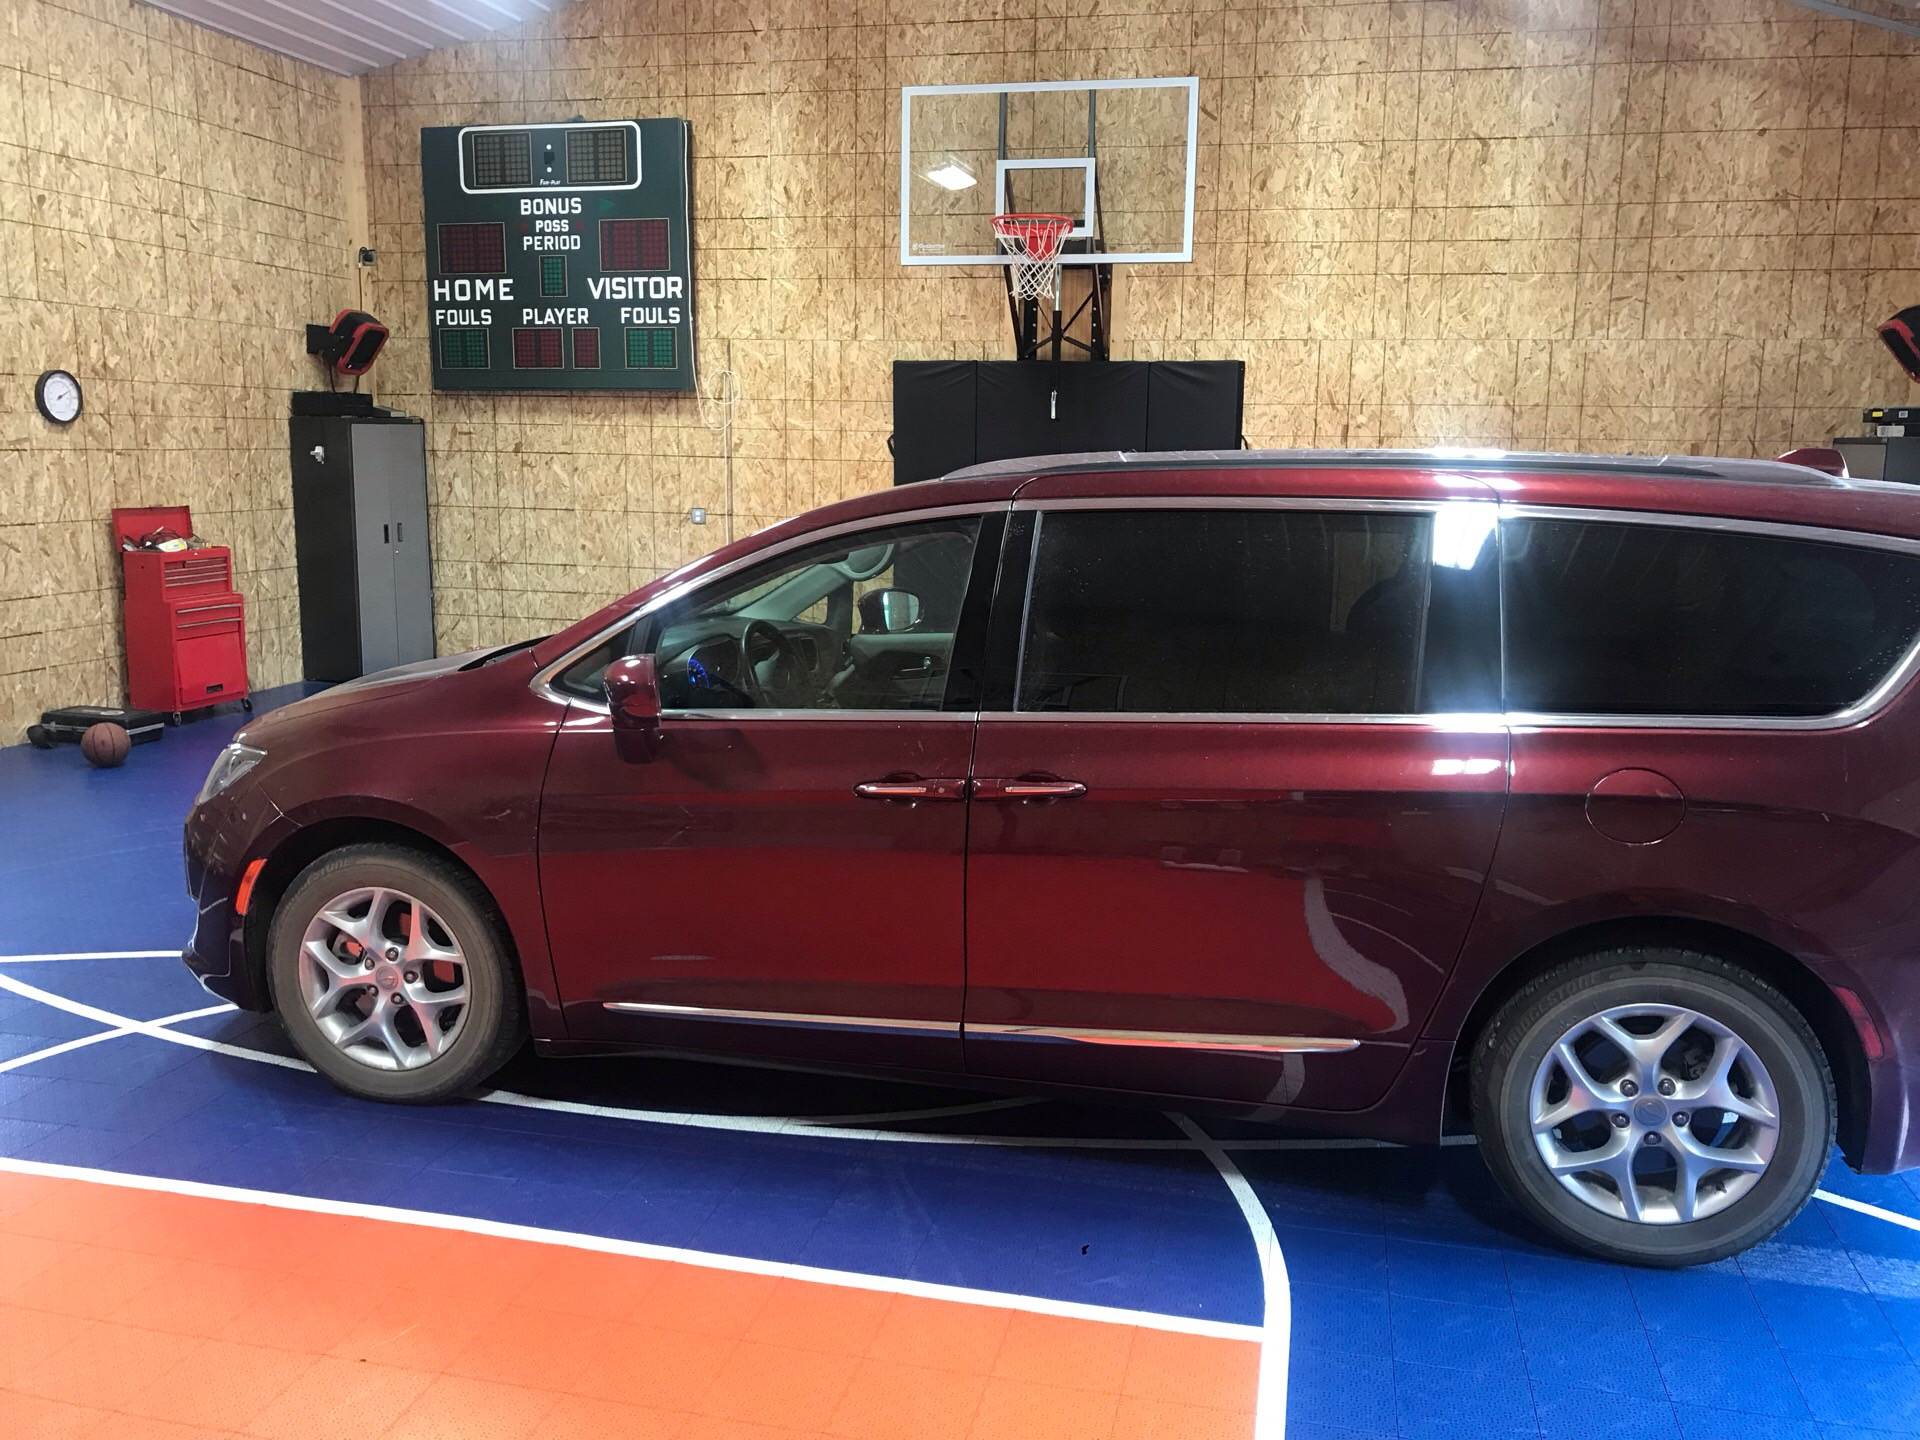 Car on Versacourt indoor basketball court